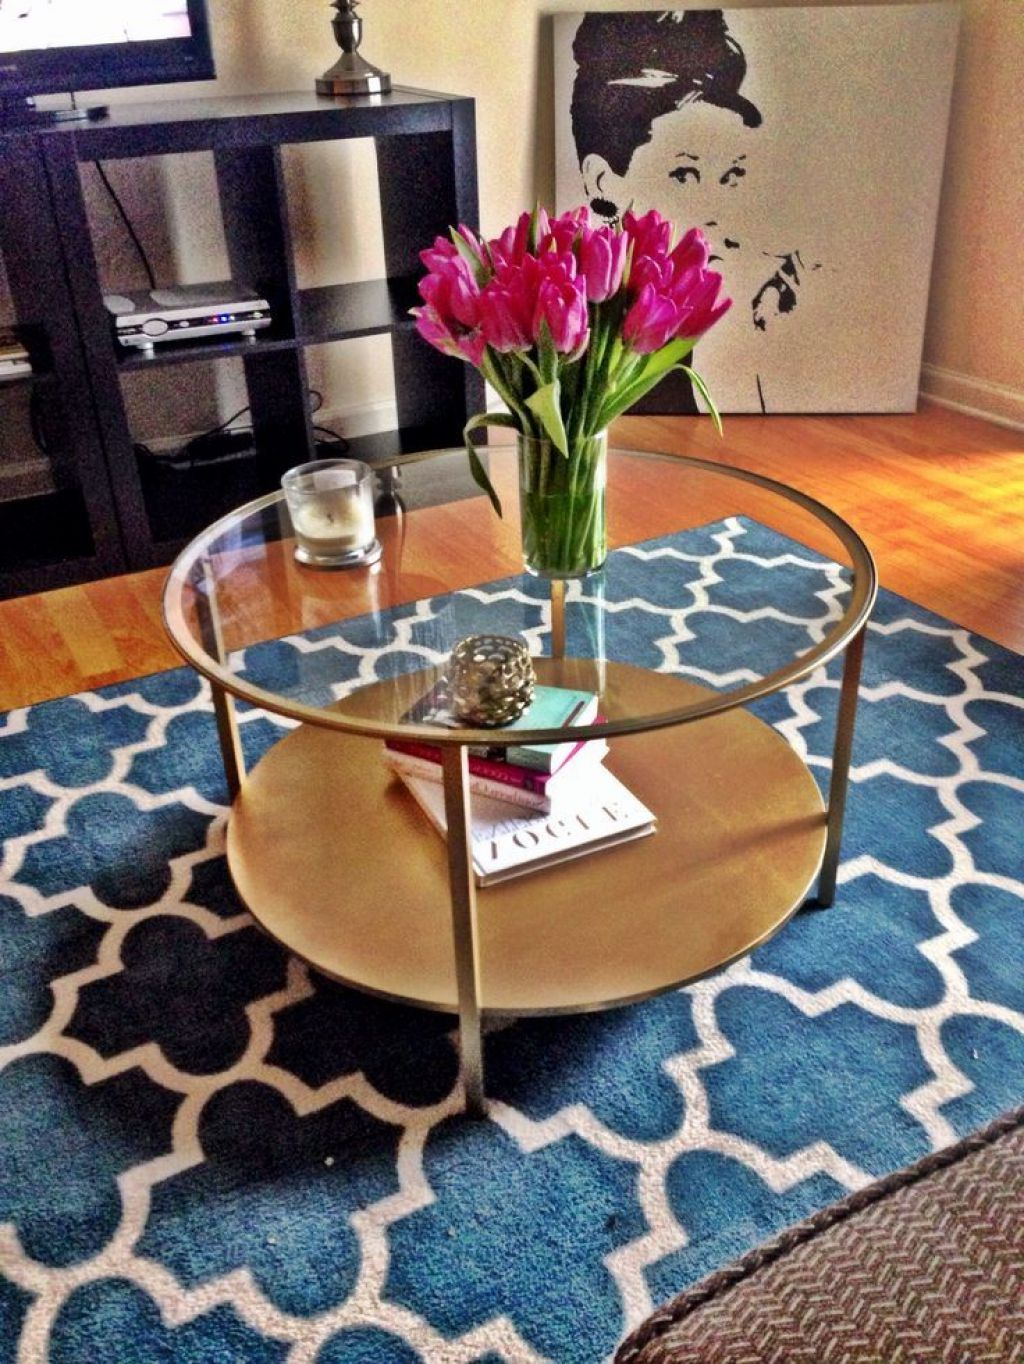 Genial Living Room With Flower Vase In Glass Top Round Coffee Table